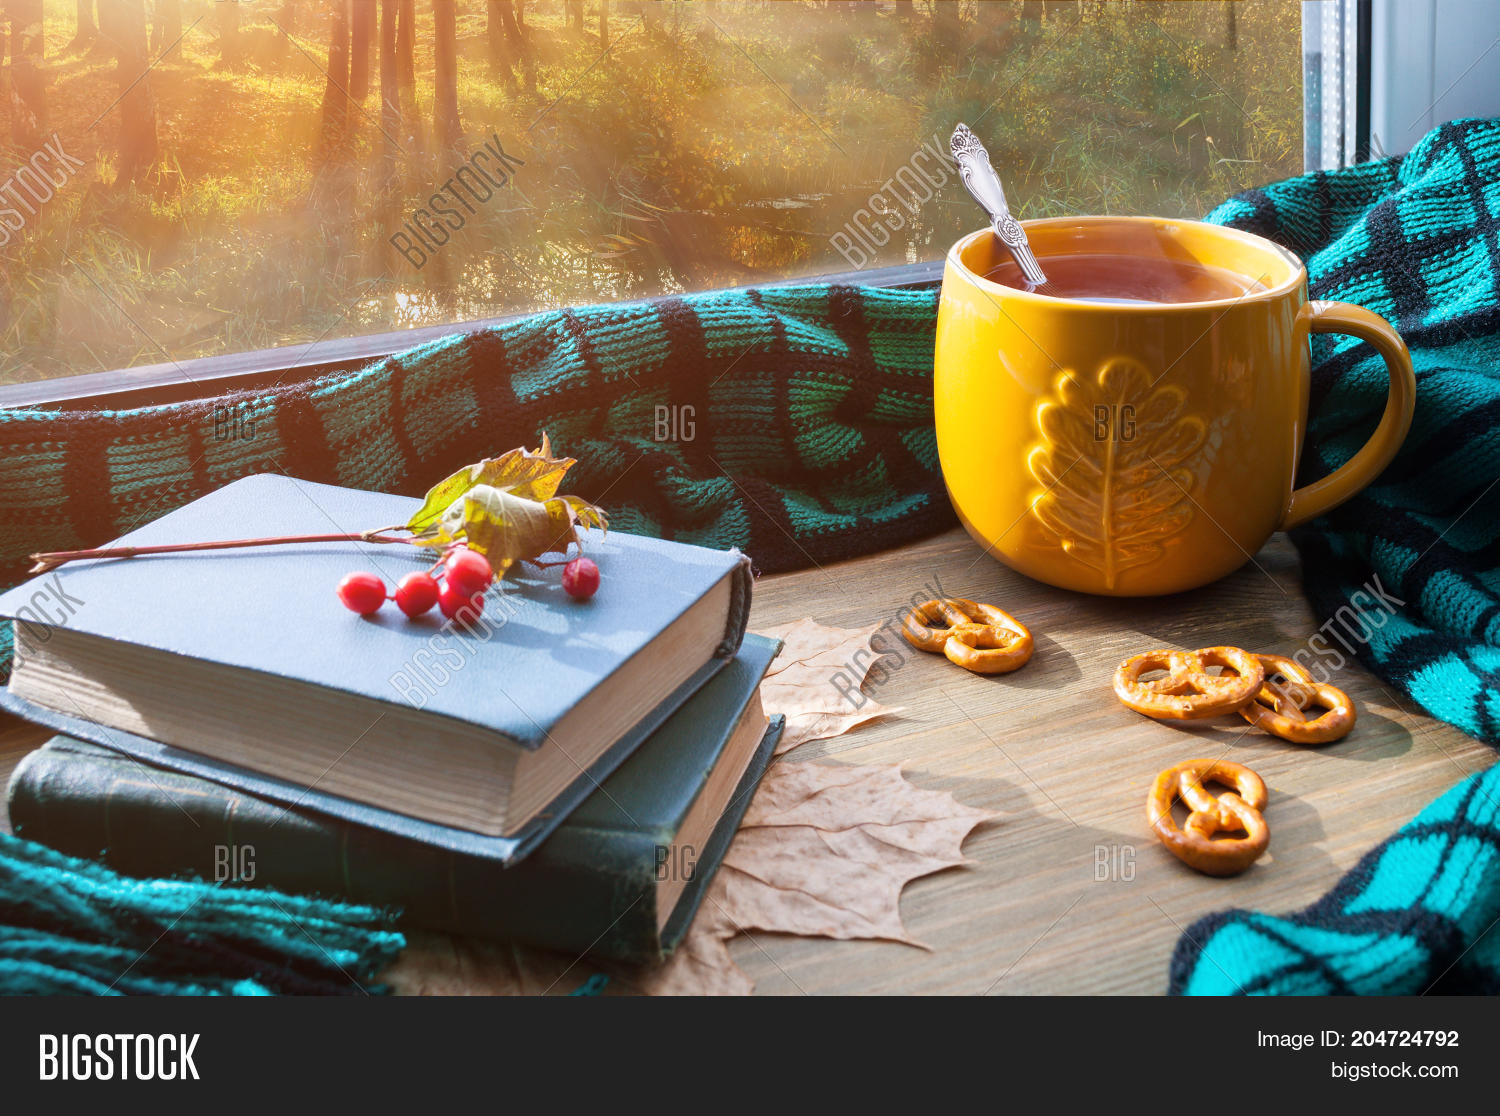 Fall Background Cup Image Photo Free Trial Bigstock